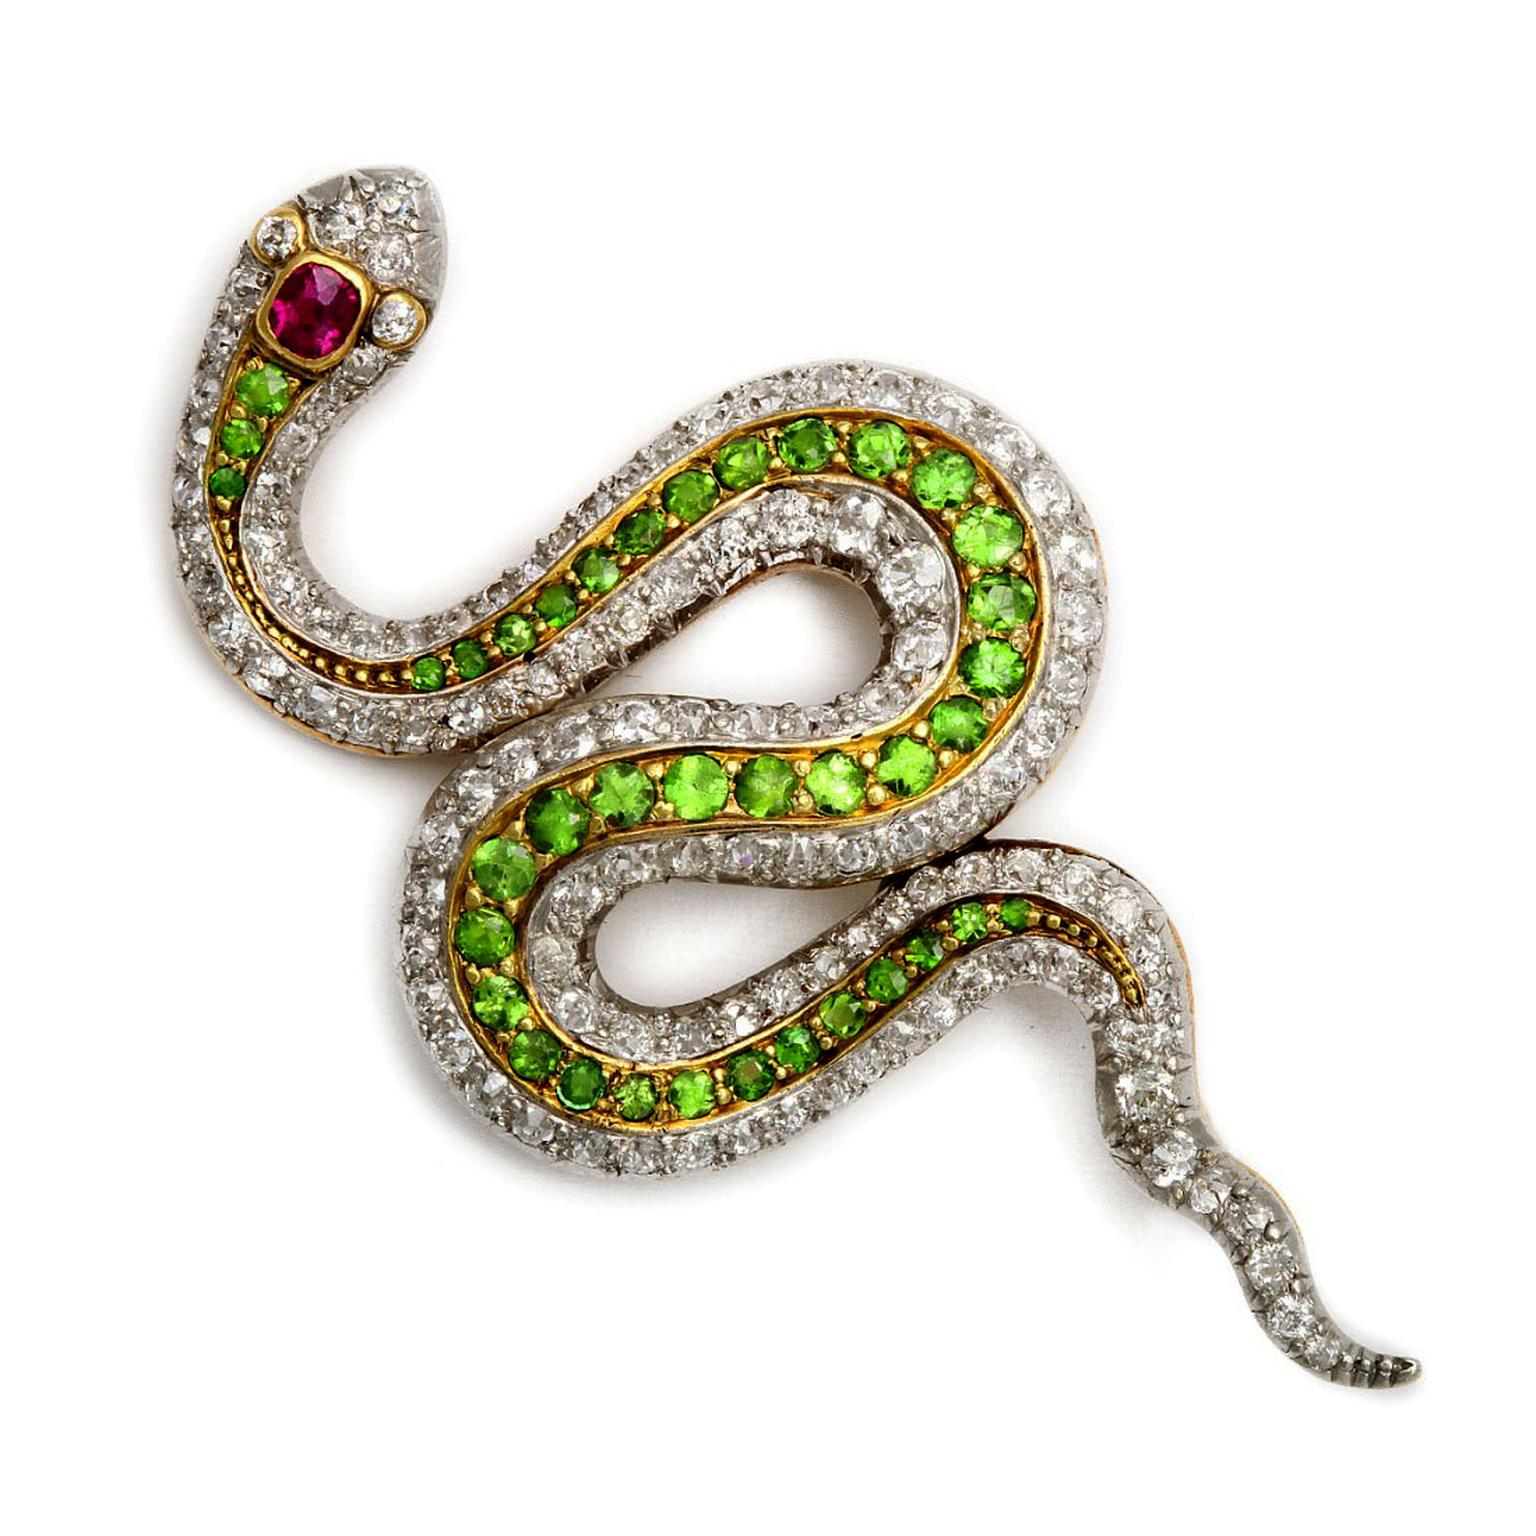 48180a1fab87b The snake is the most loved motif in antique jewellery   The ...